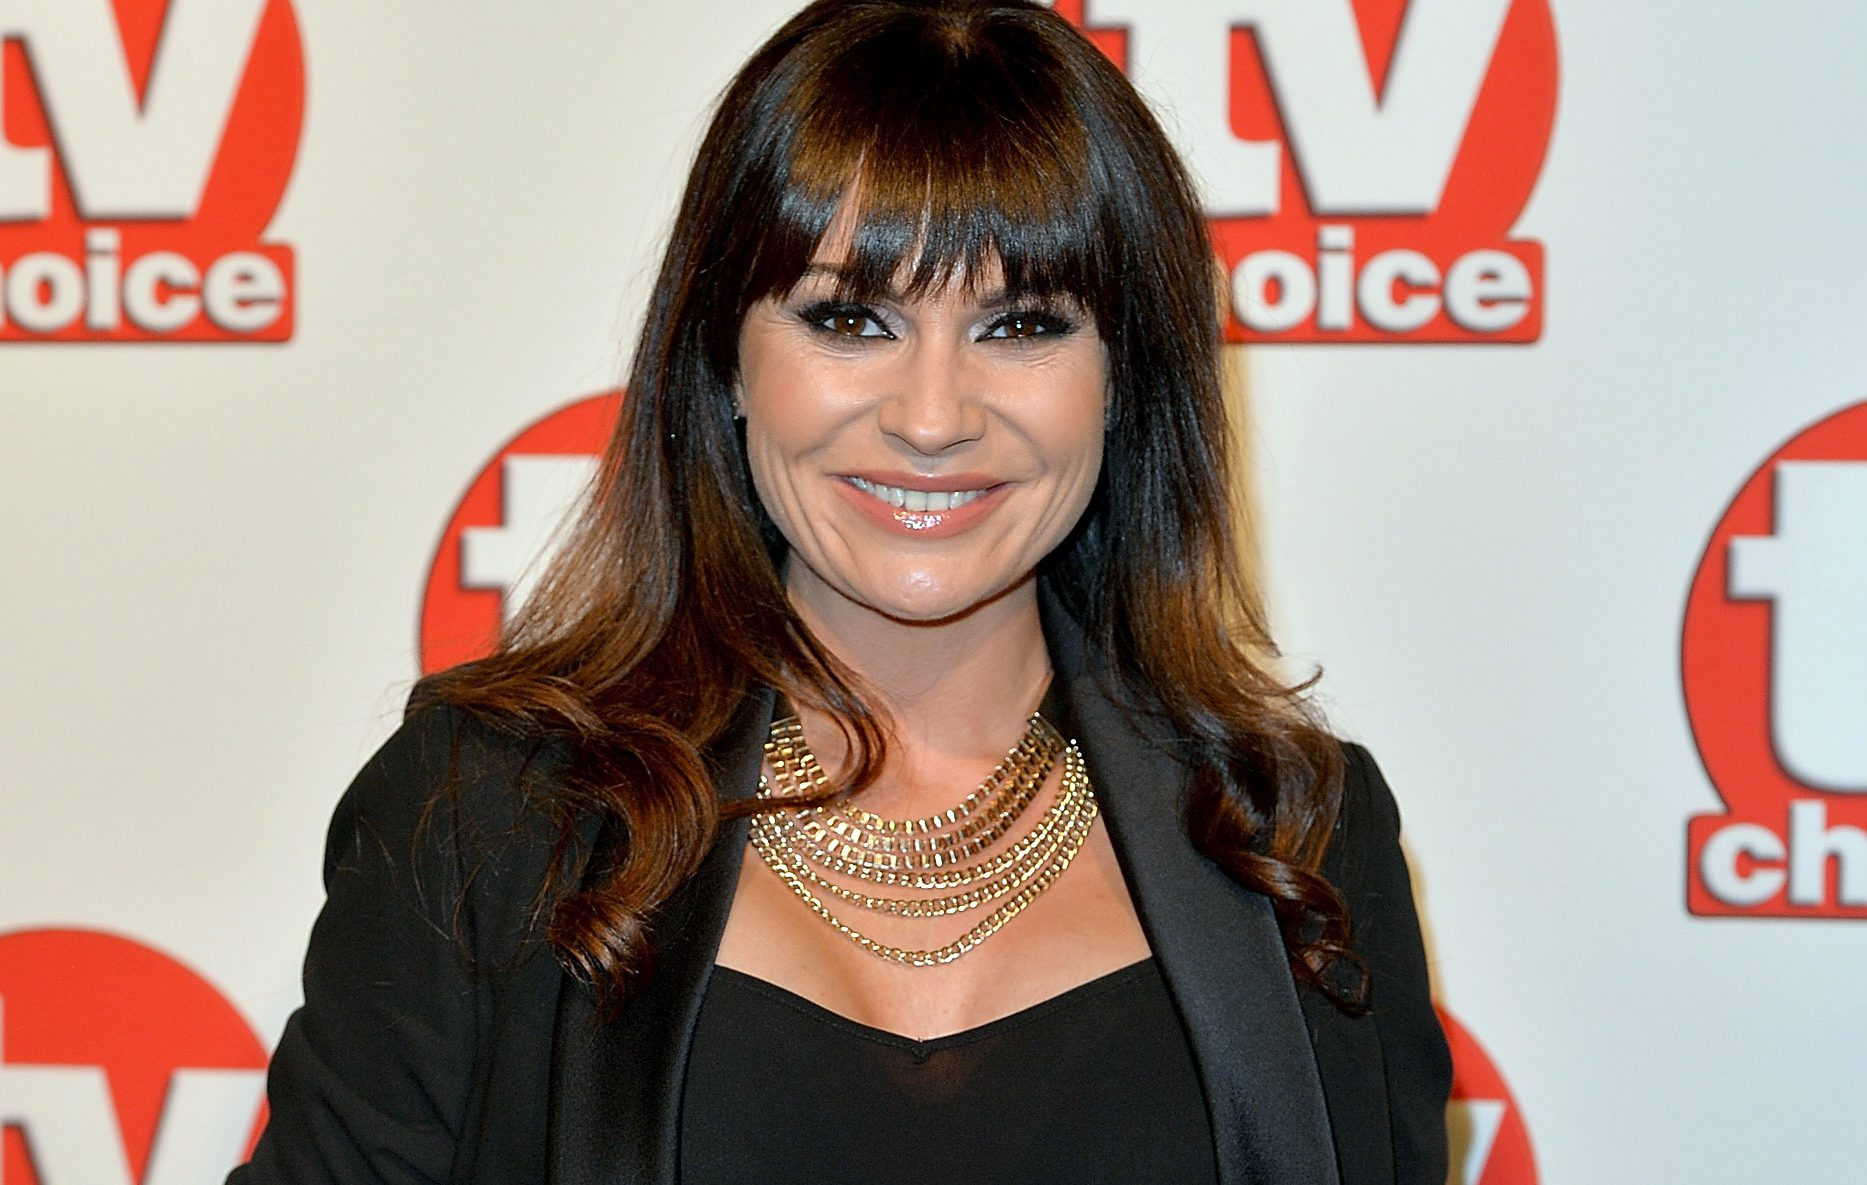 Congratulations! Emmerdale actress Lucy Pargeter 'over the moon' after confirming pregnancy